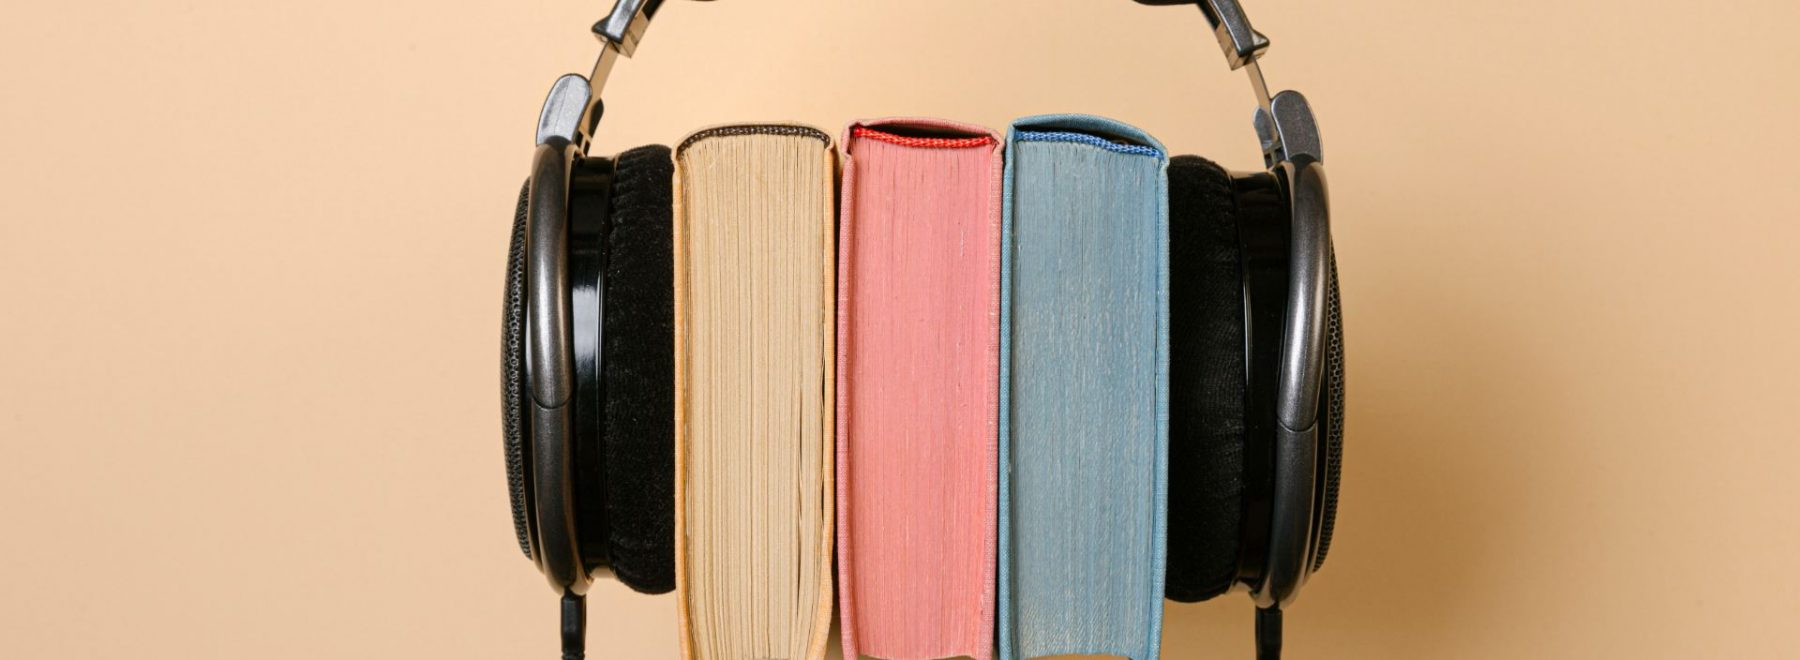 Headset over a series of books